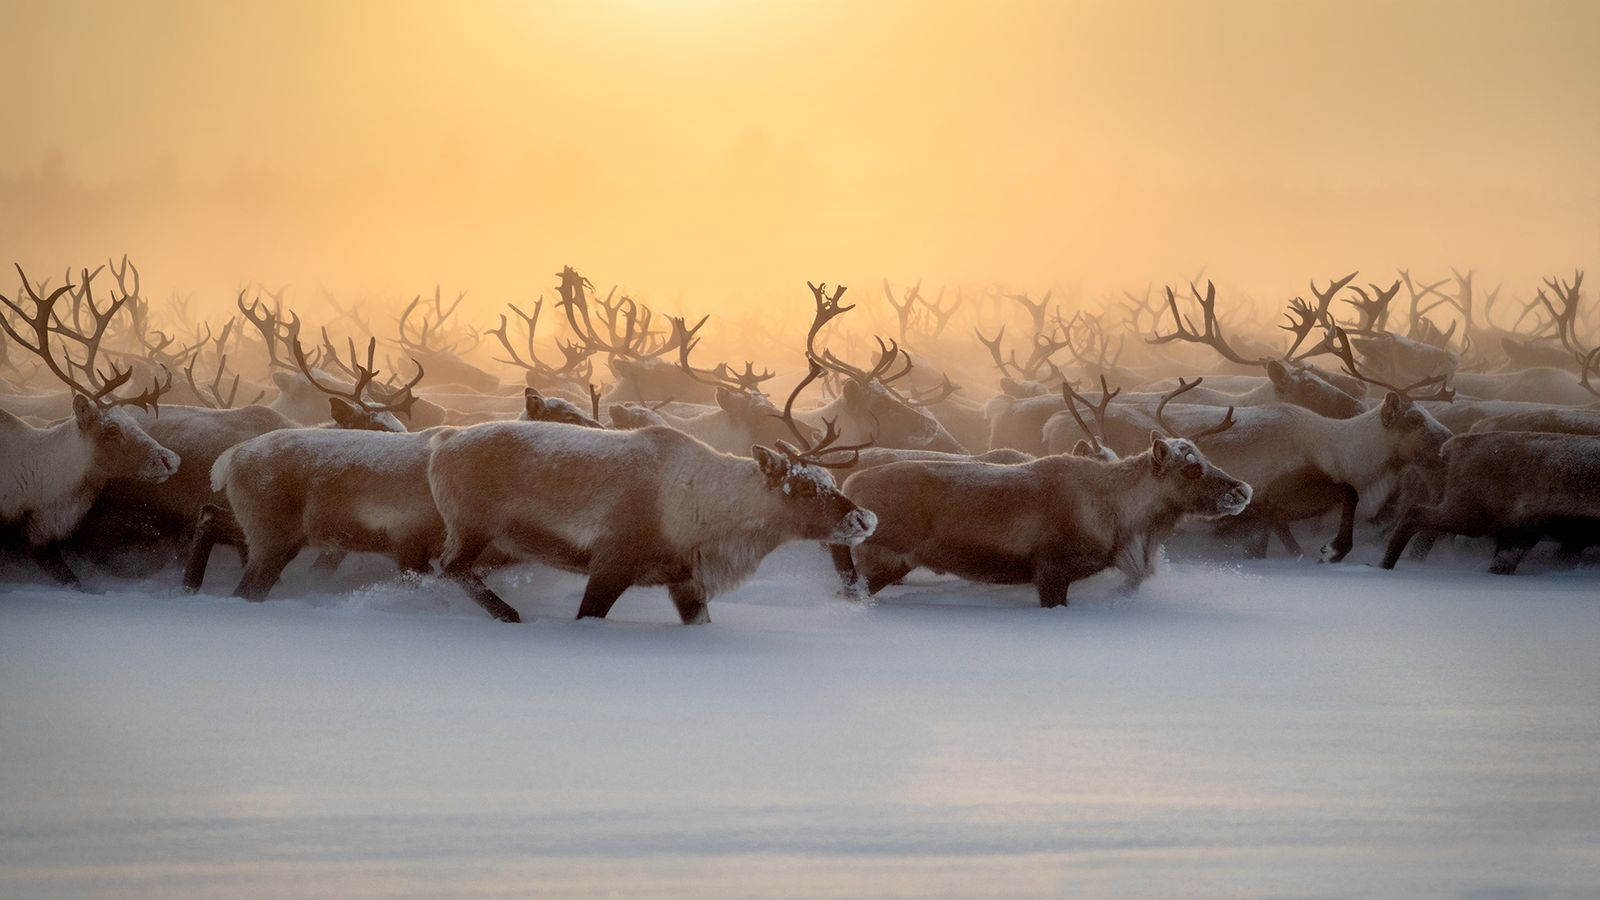 Photograph by Marcel Rebro, National Geographic Your Shot